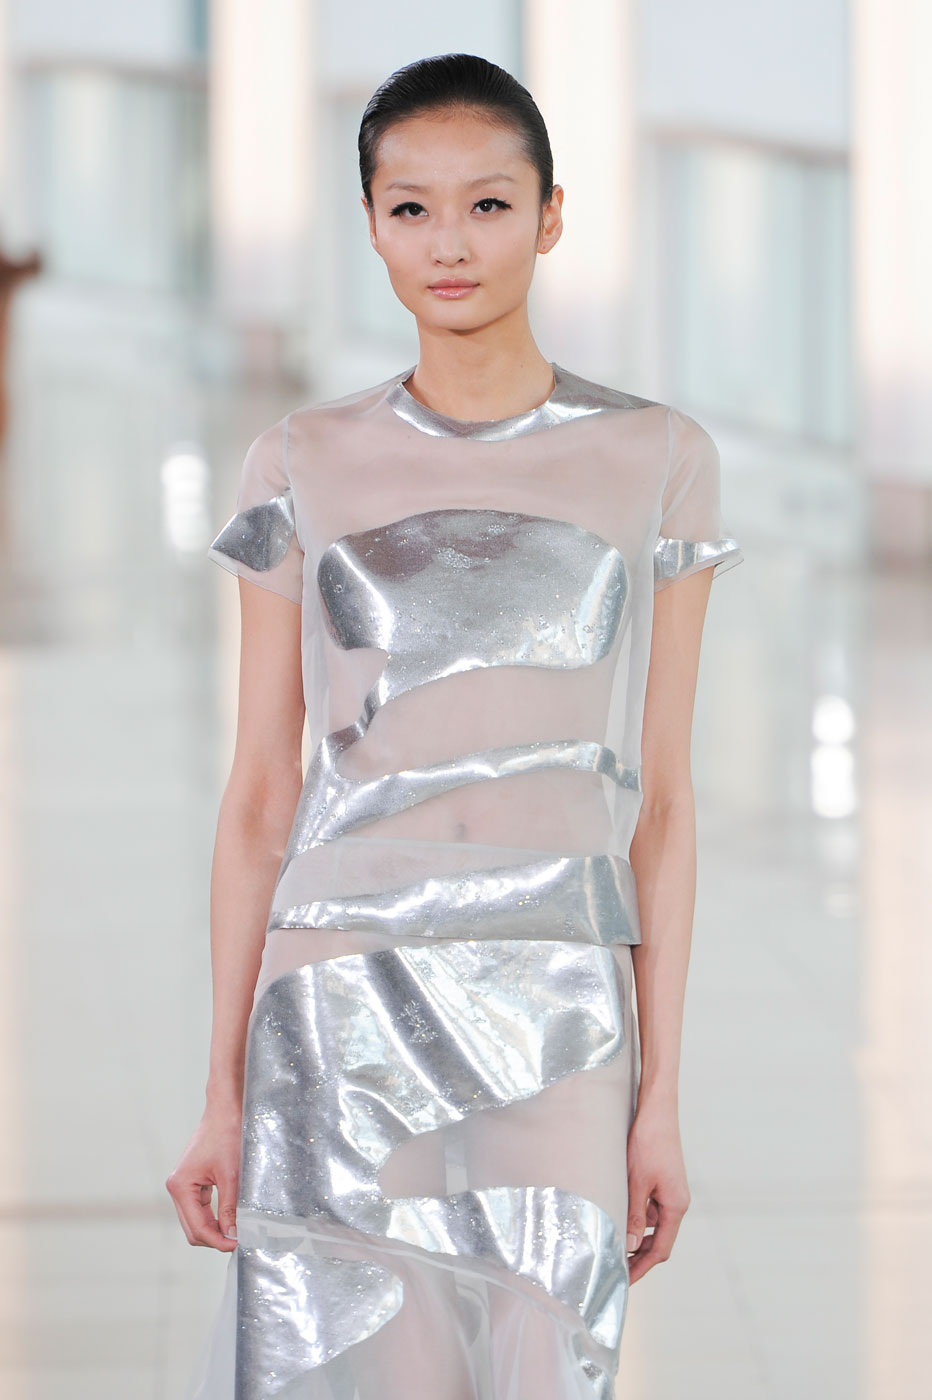 stephane-rolland-fashion-runway-show-haute-couture-paris-spring-2015-the-impression-52